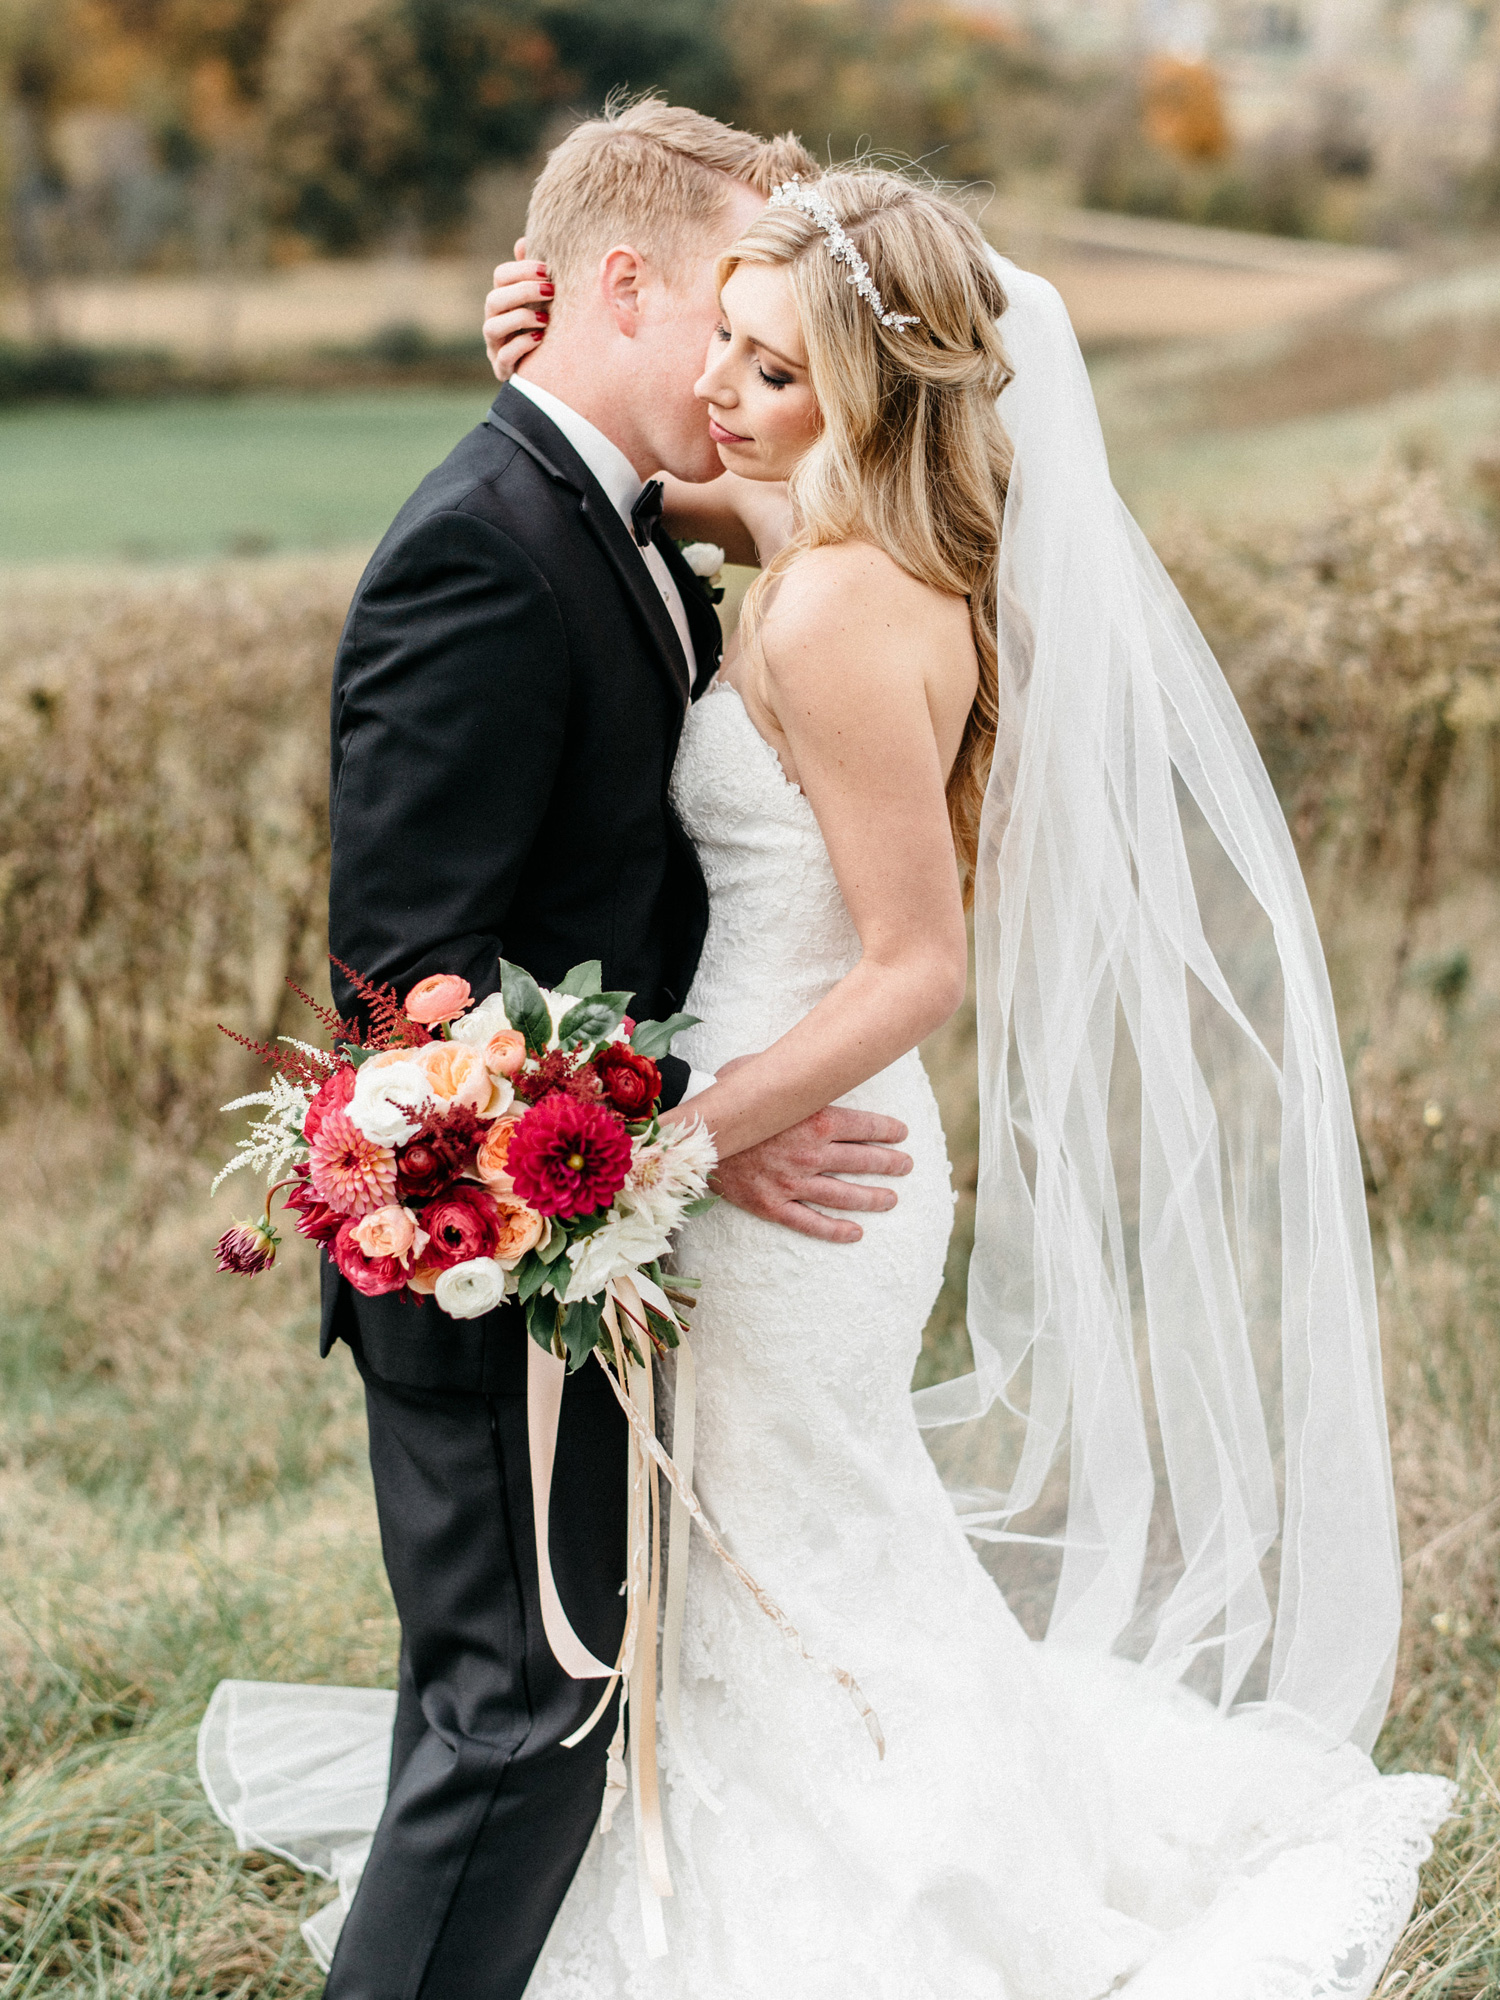 Bride and Groom Portrait at Birch Hill Barn capture by Geneoh Photography